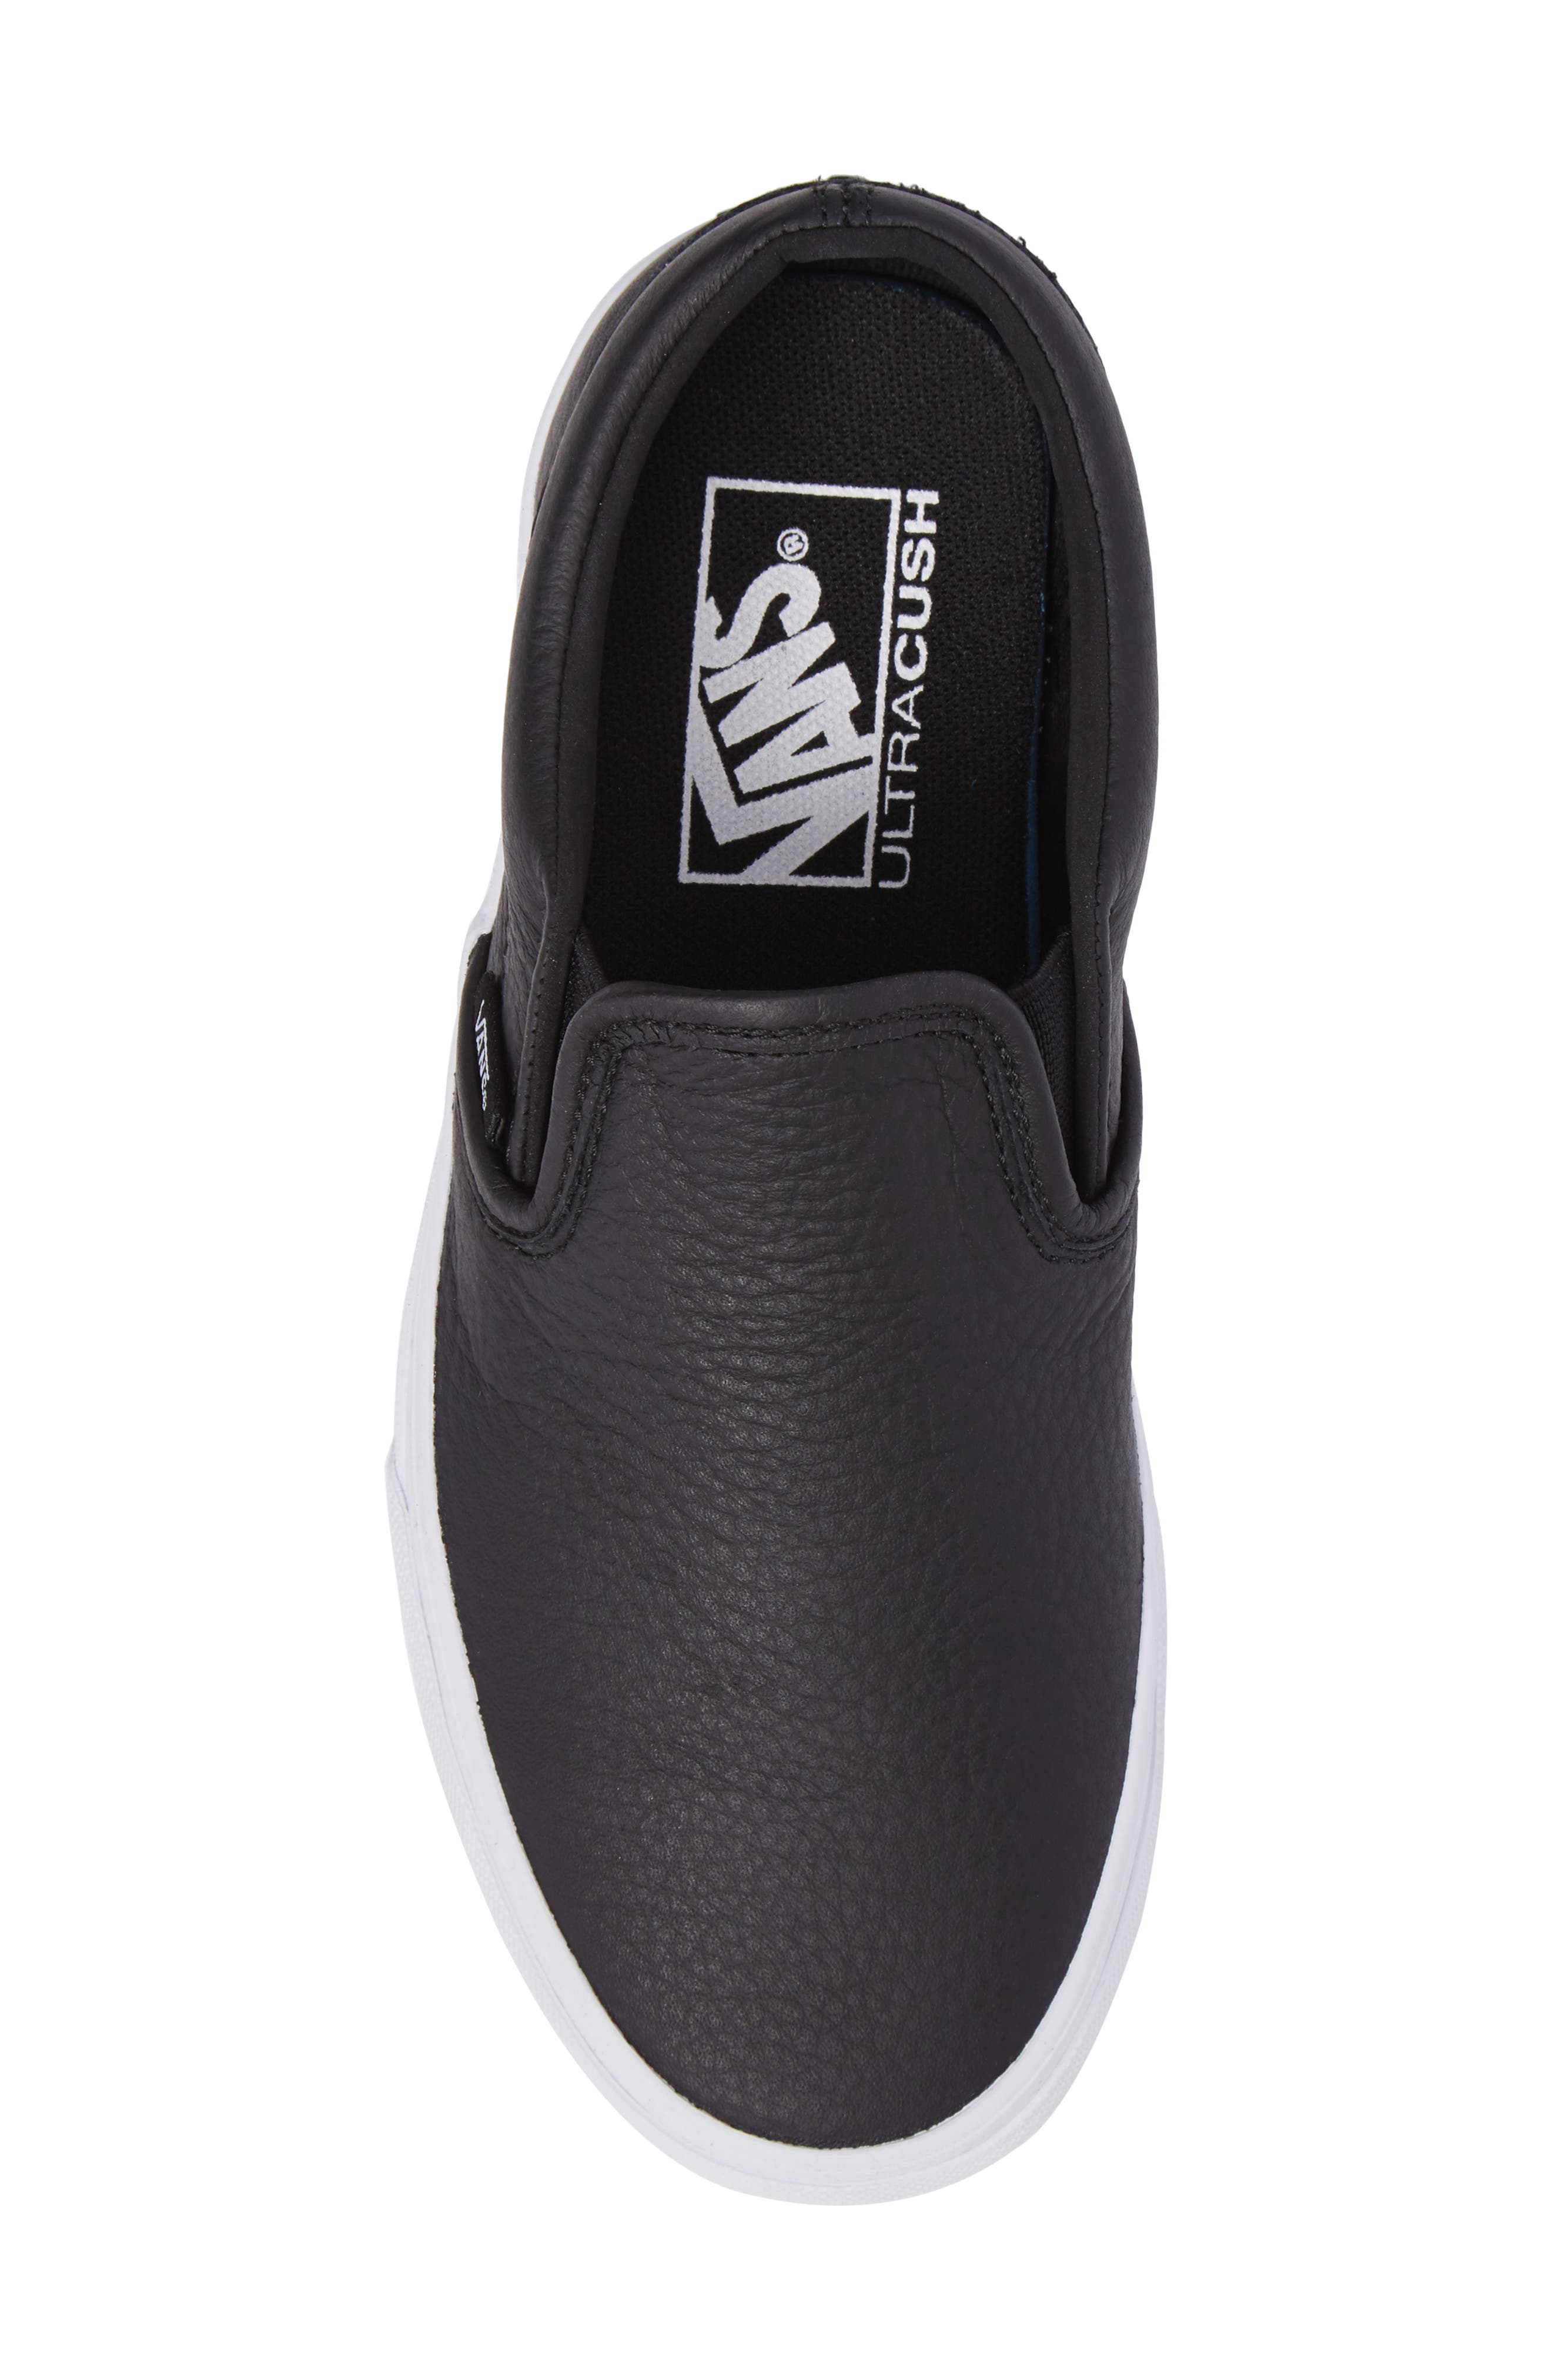 Classic Slip-On Sneaker,                             Alternate thumbnail 4, color,                             Black/ True White